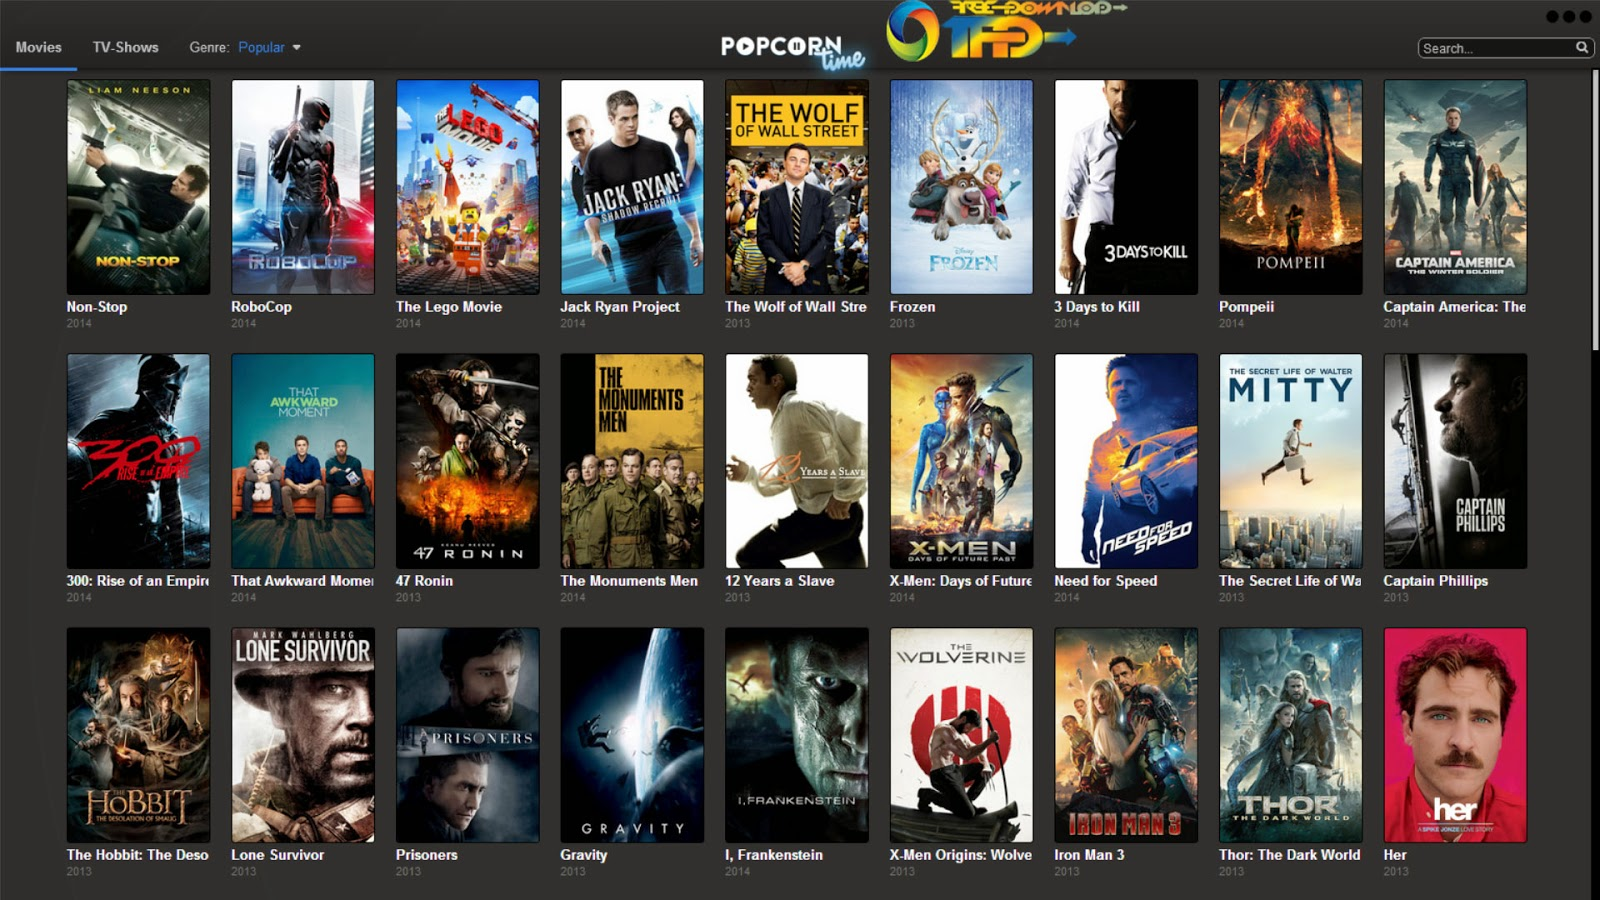 Watch free movies online now without downloading anything nicezon